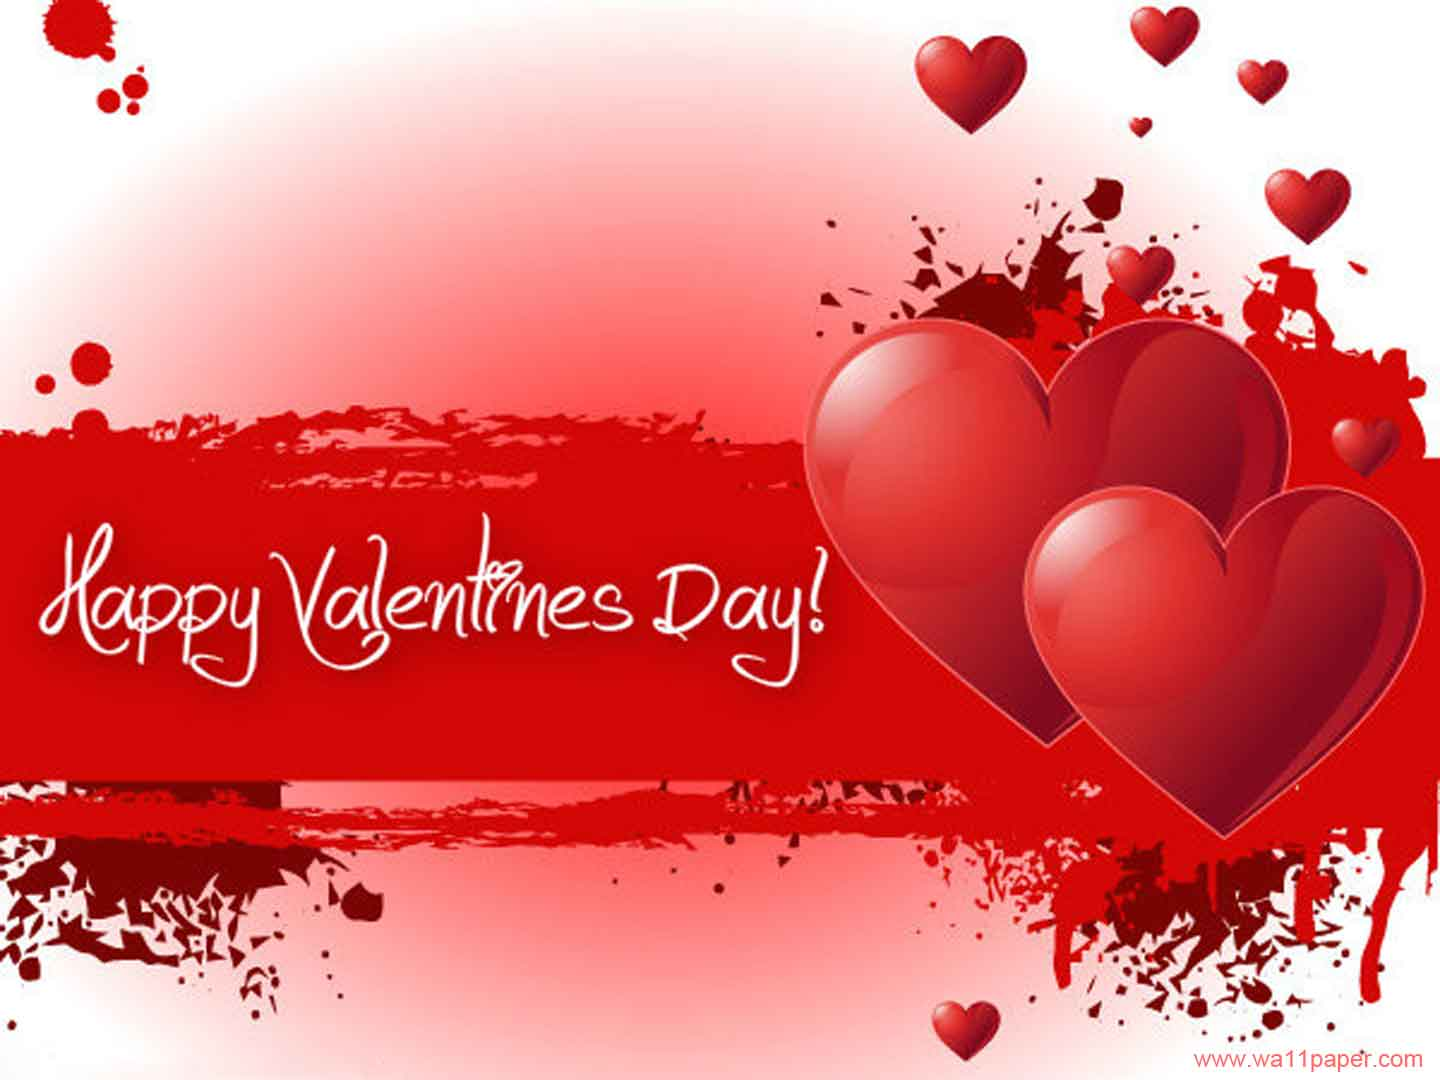 most beautiful happy valentine's day greeting pictures and images, Beautiful flower